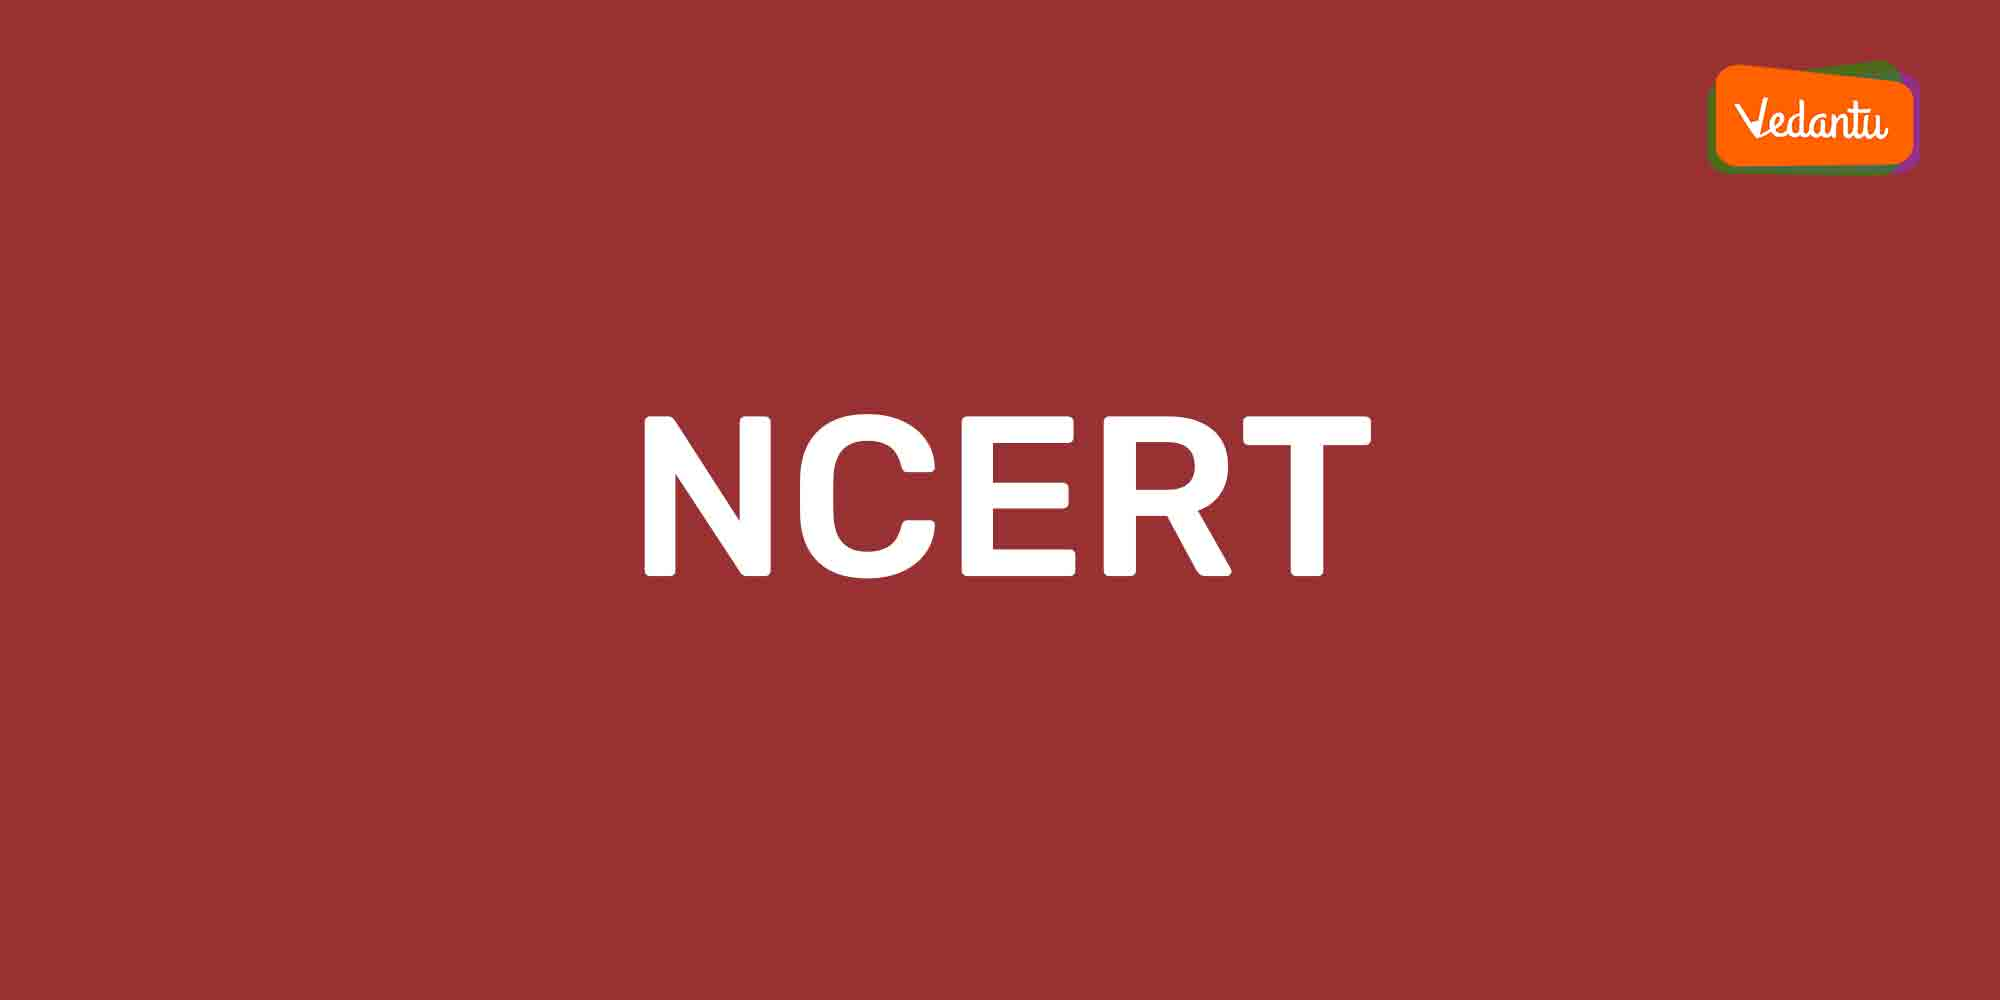 Links to Download NCERT Books for Class 6 to Class 12